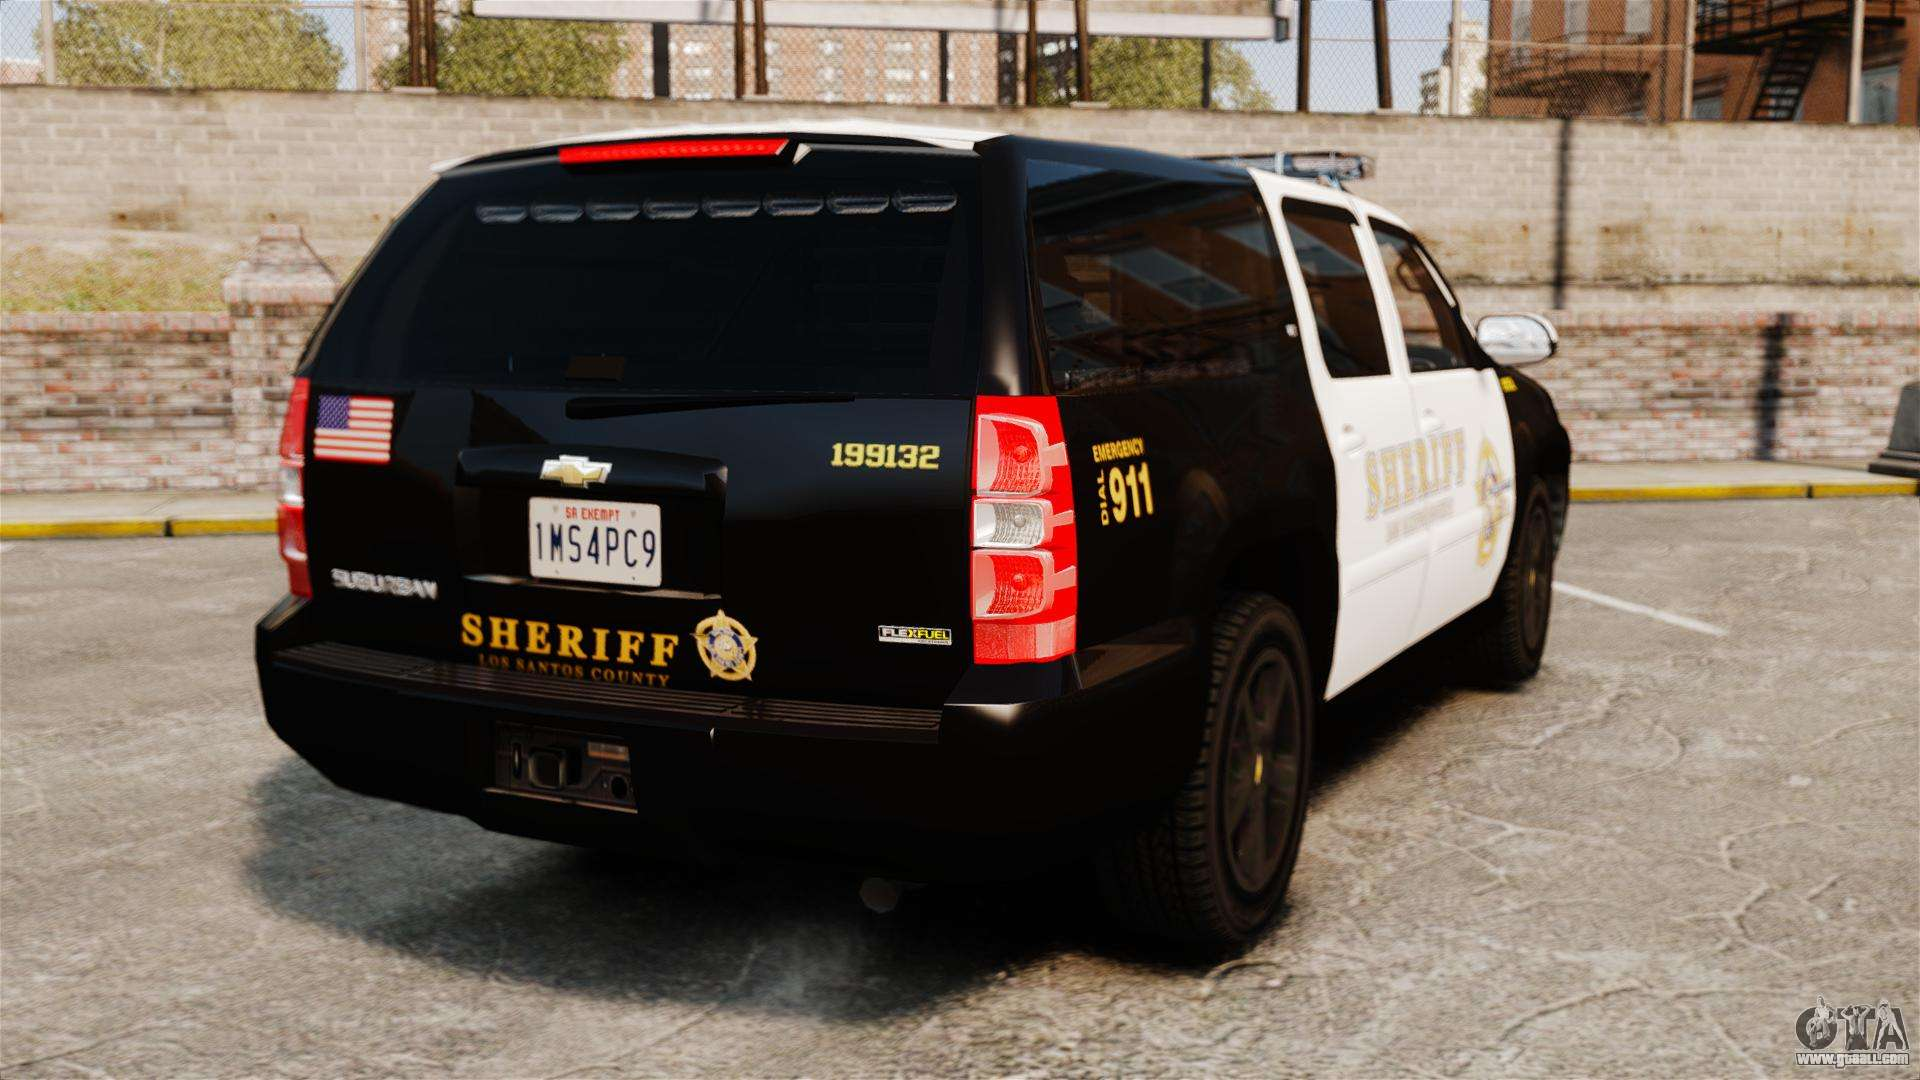 Chevrolet Suburban Gta V Blaine County Sheriff For Gta 4